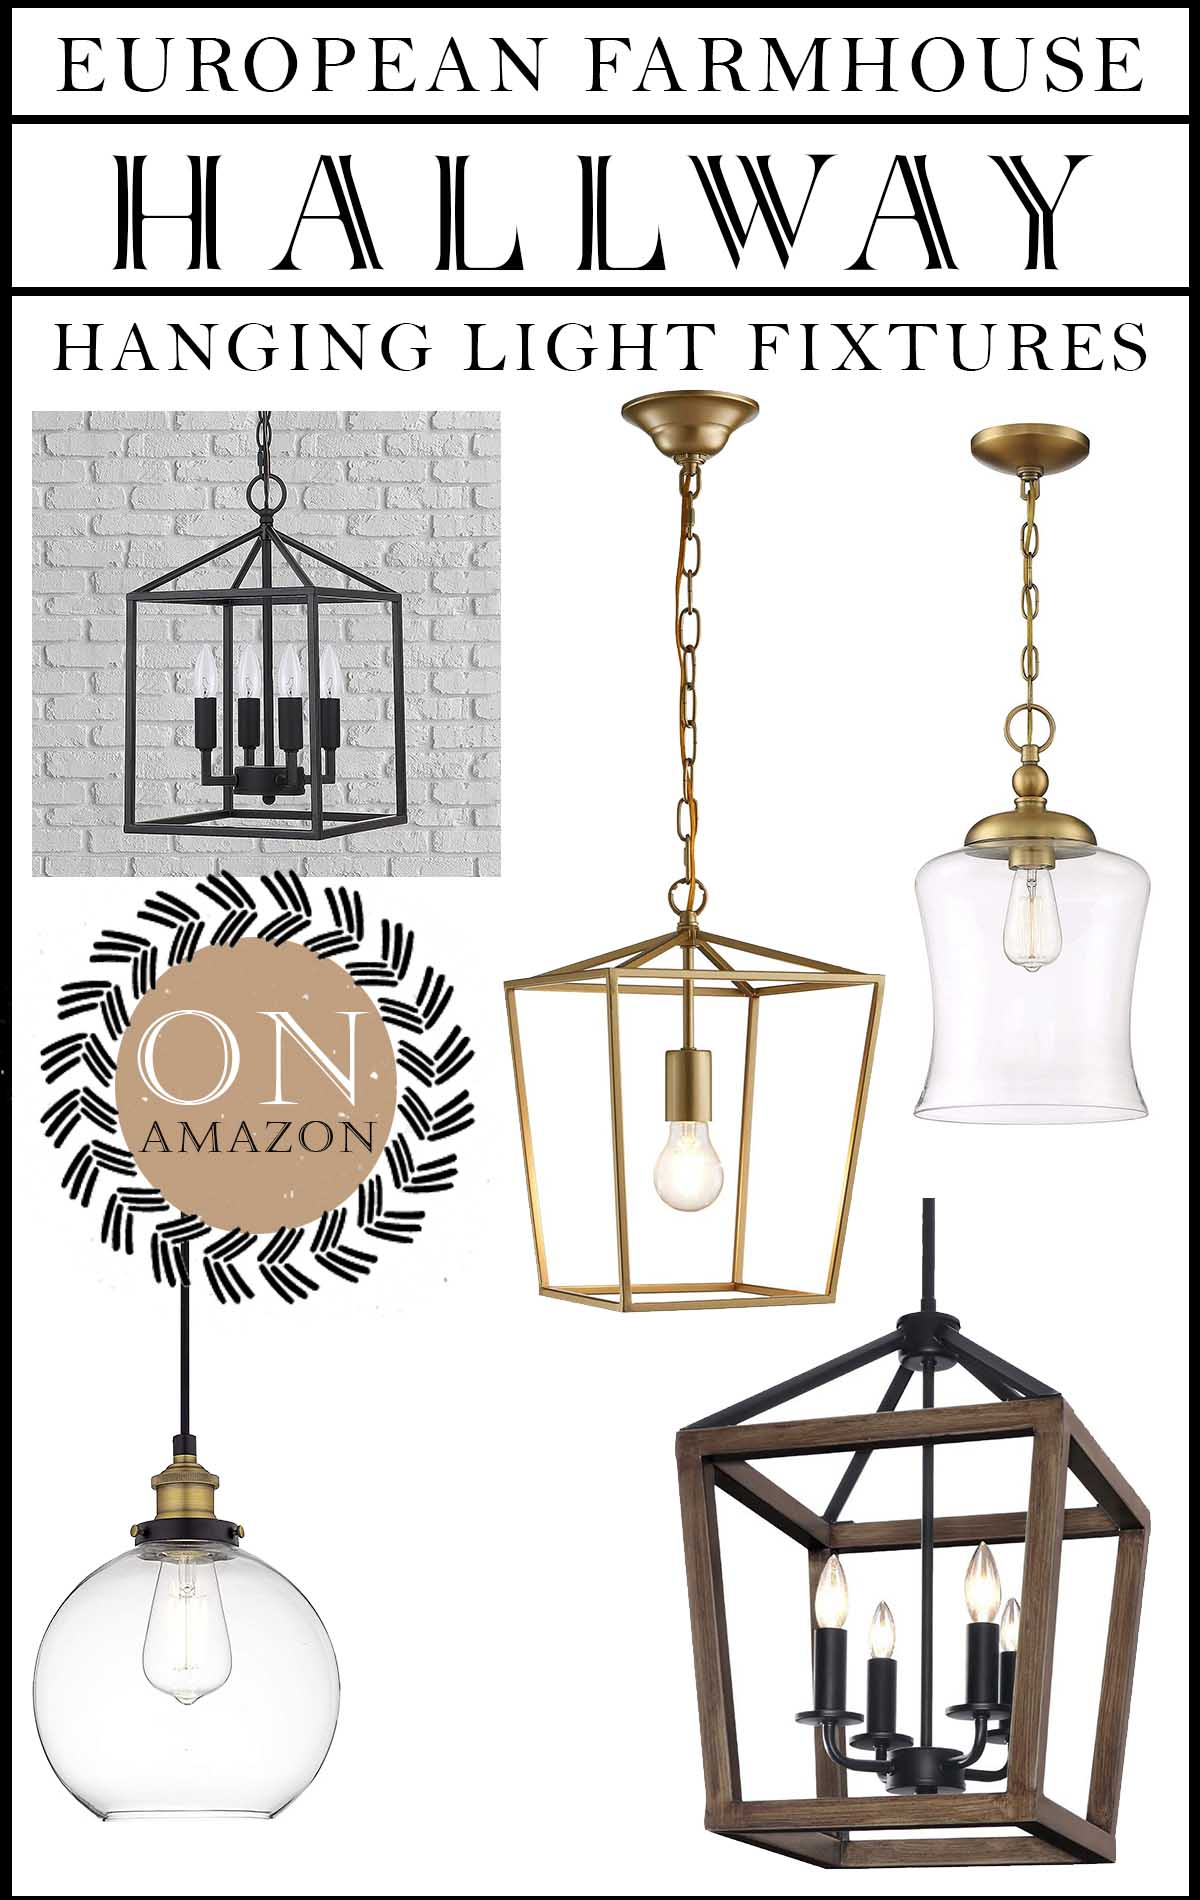 hallway hanging light fixtures on amazon